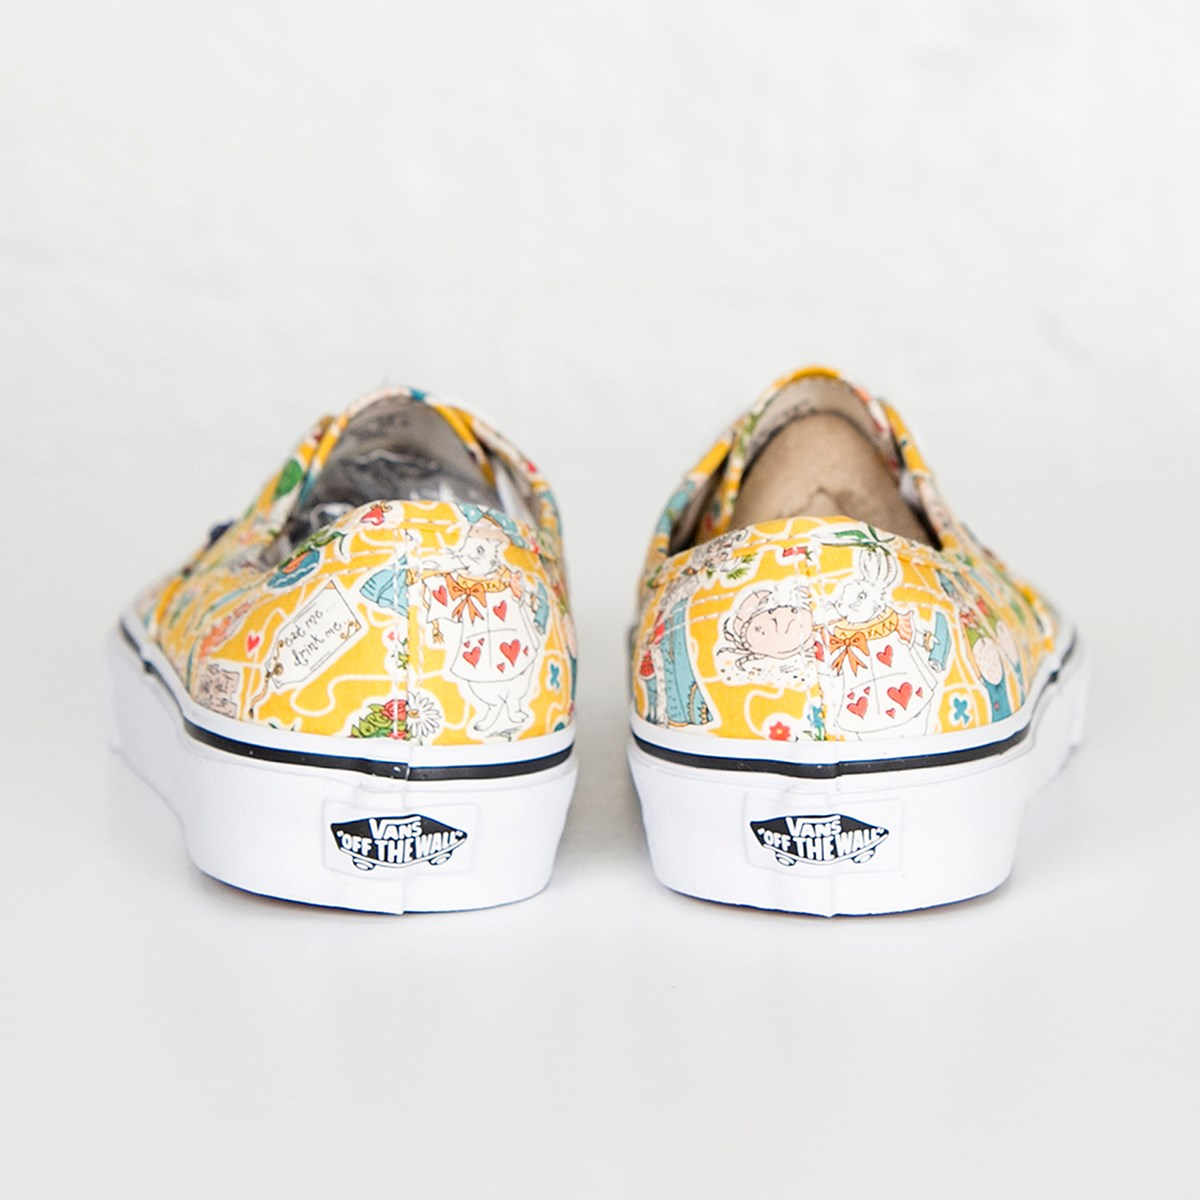 c75ea1a5f8 Vans Authentic - Zukfhi - Sneakersnstuff